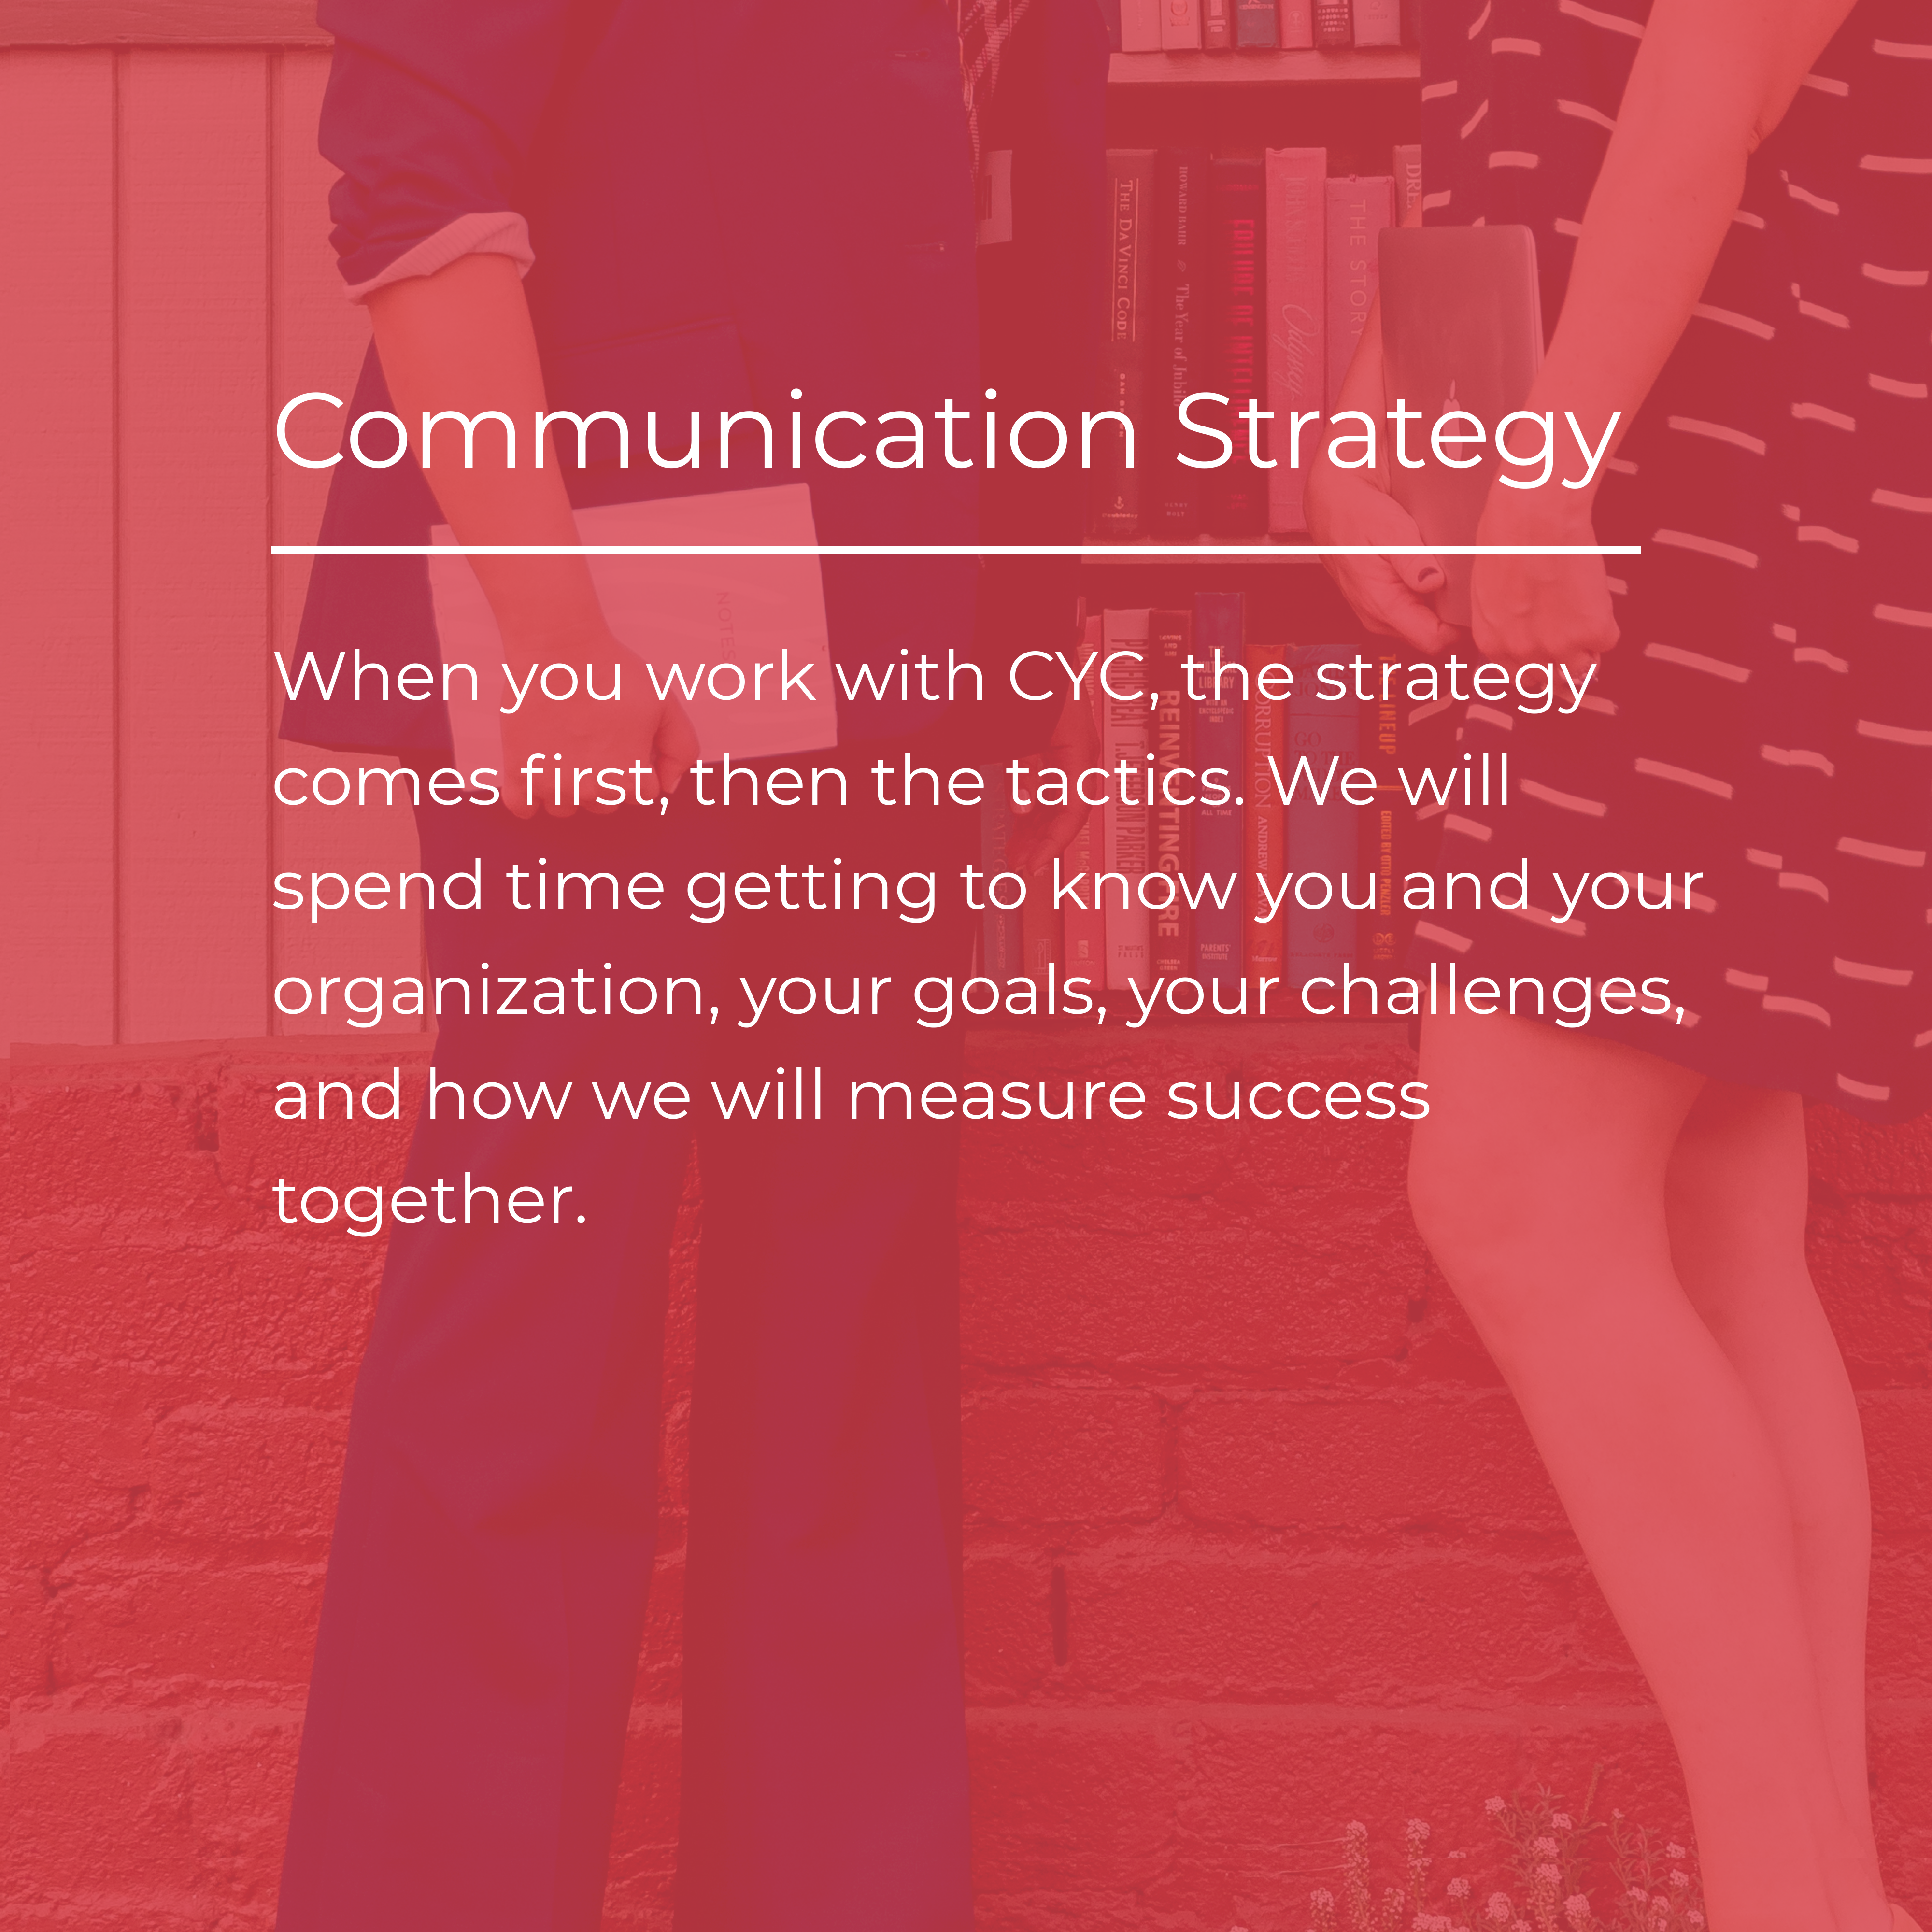 Communication Strategy outline